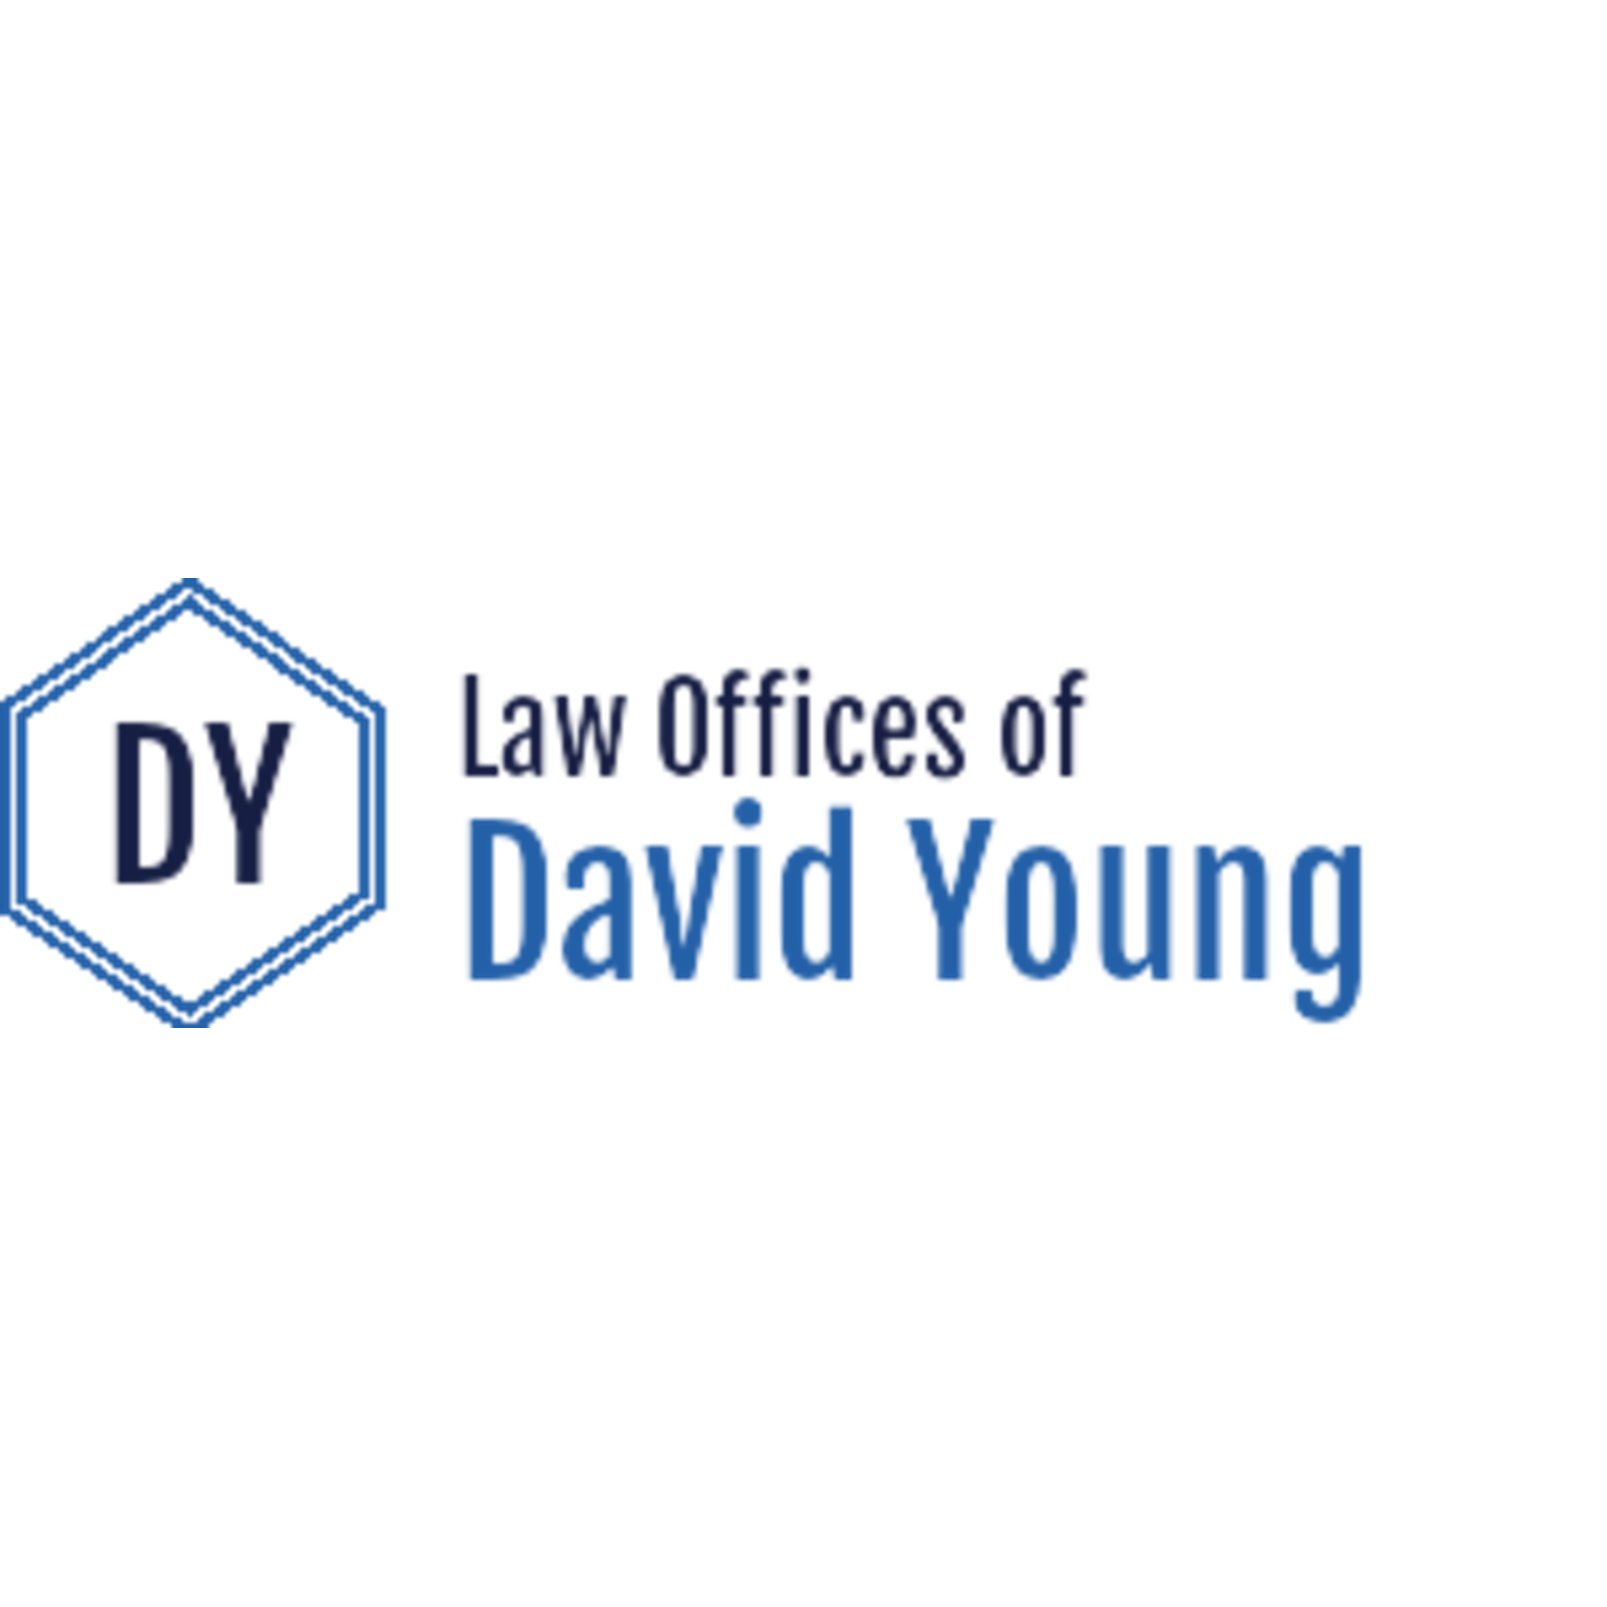 Law Offices of David Young